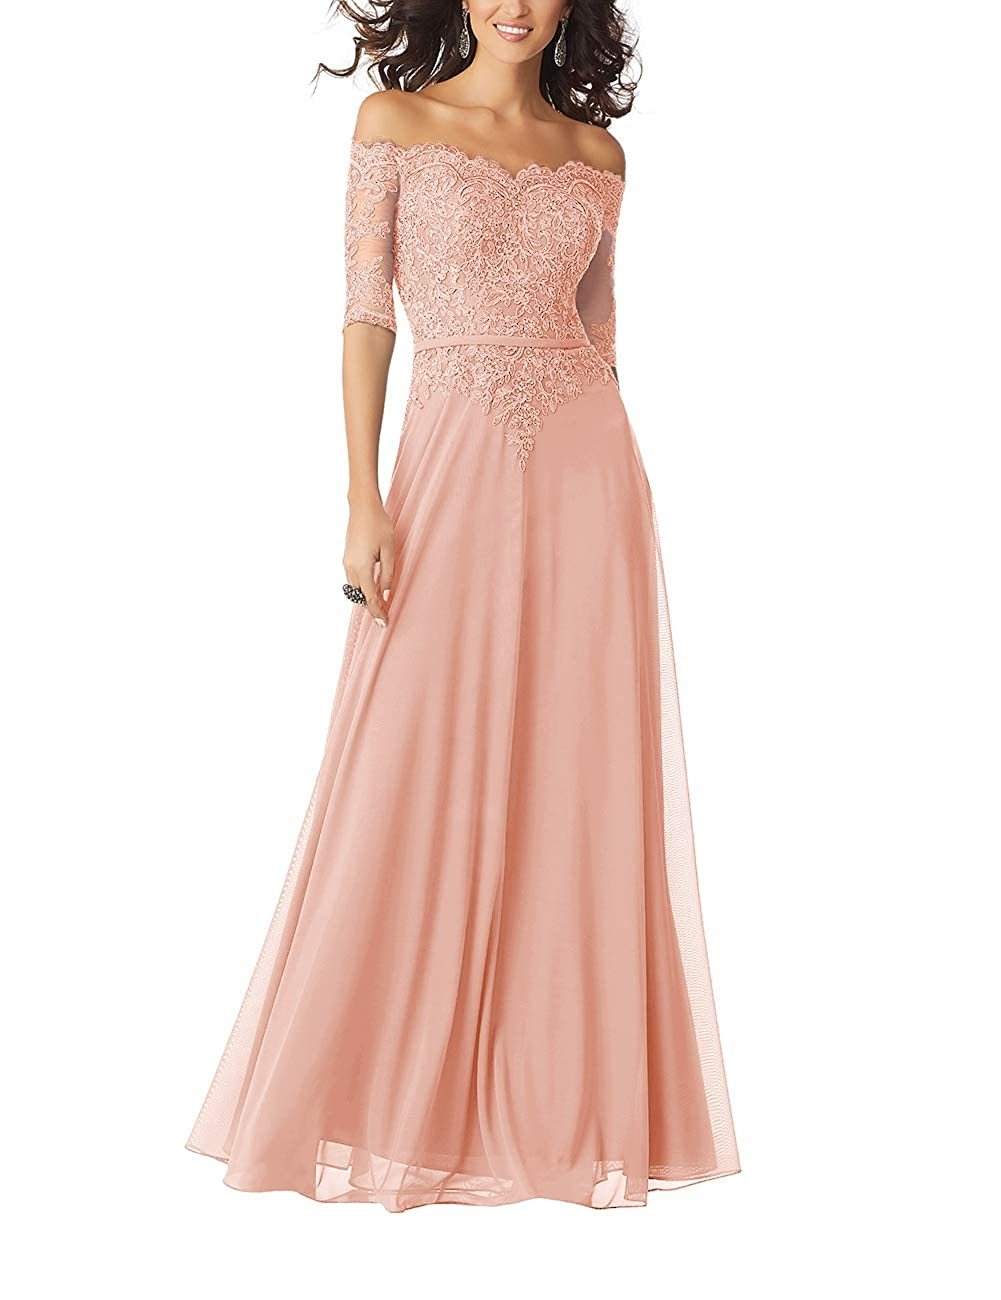 bluesh Women Lace Formal Evening Gown Half Sleeves Mother The Bride Dress